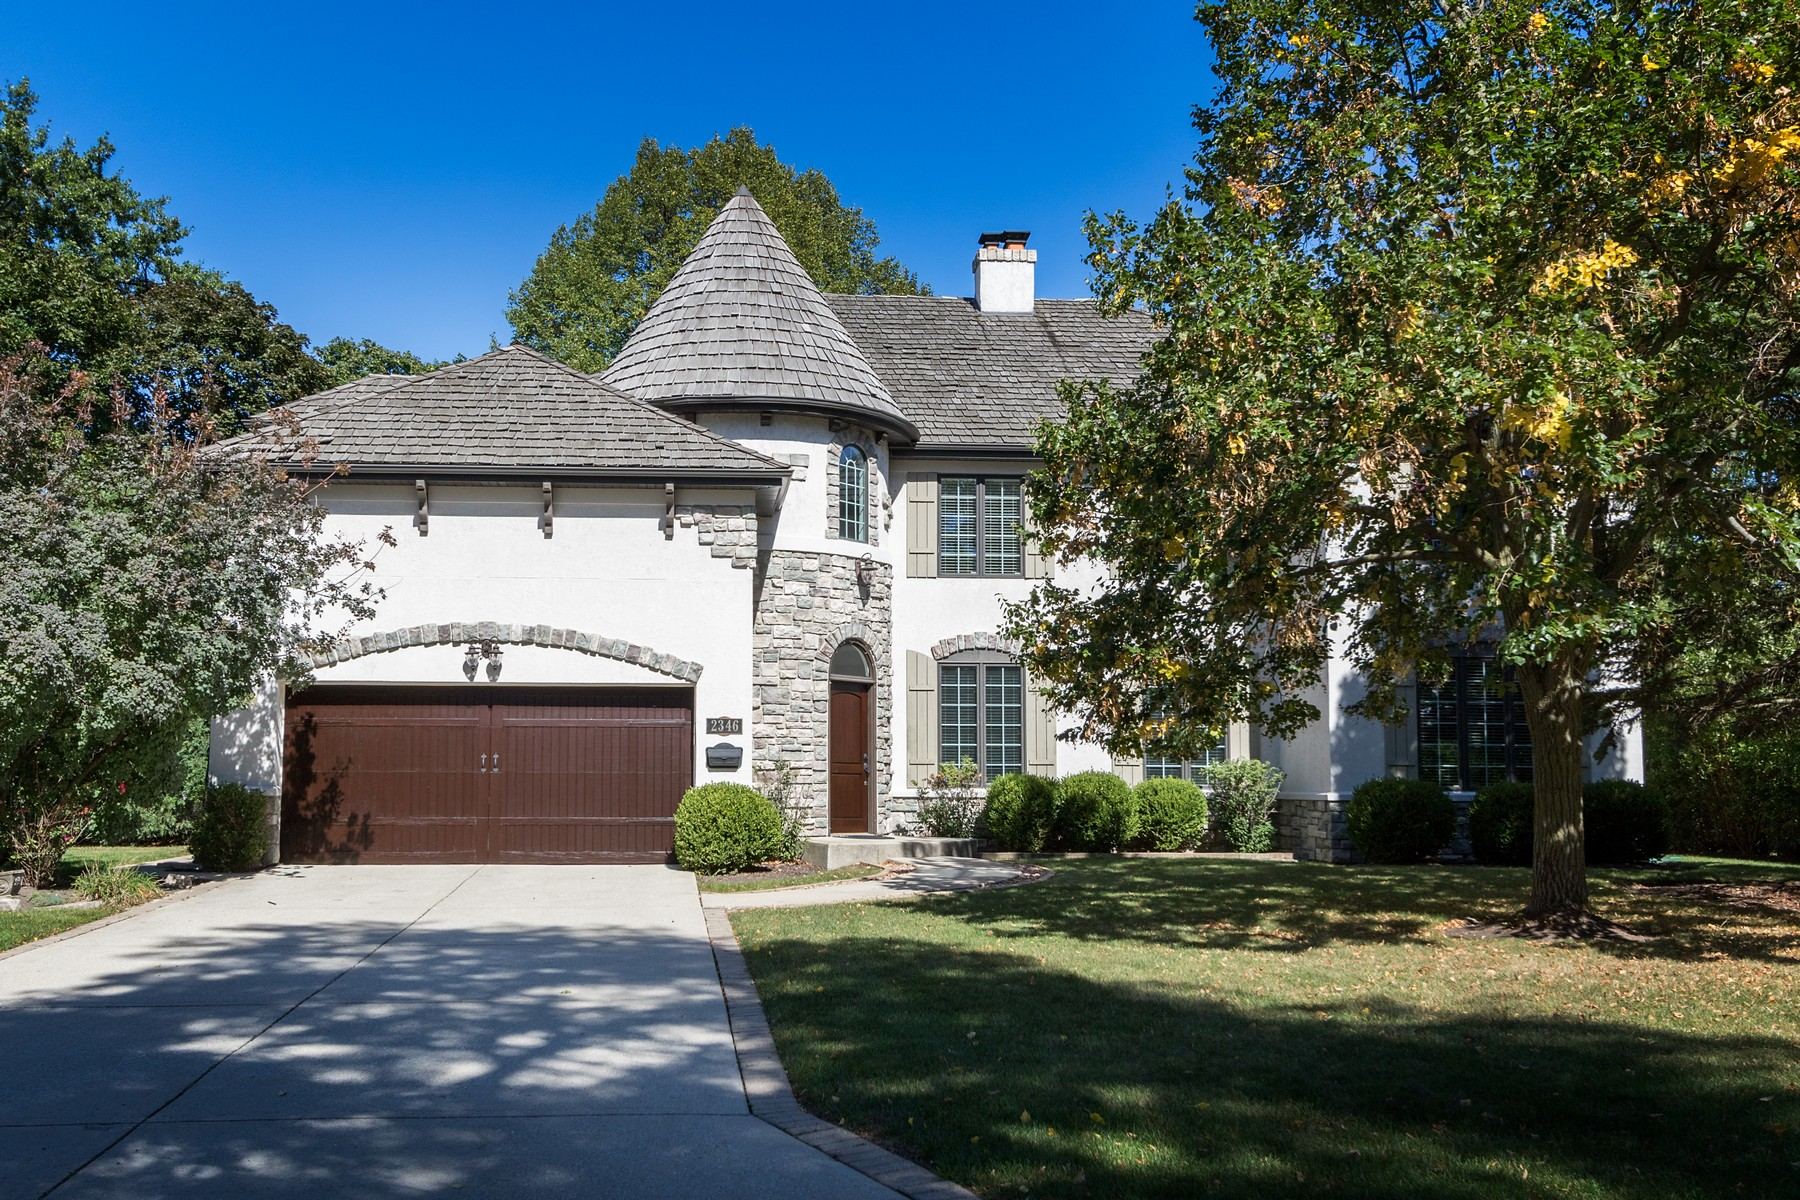 Moradia para Venda às A Lovely Gem In Sought After Swainwood 2346 Linden Leaf Drive Glenview, Illinois, 60025 Estados Unidos